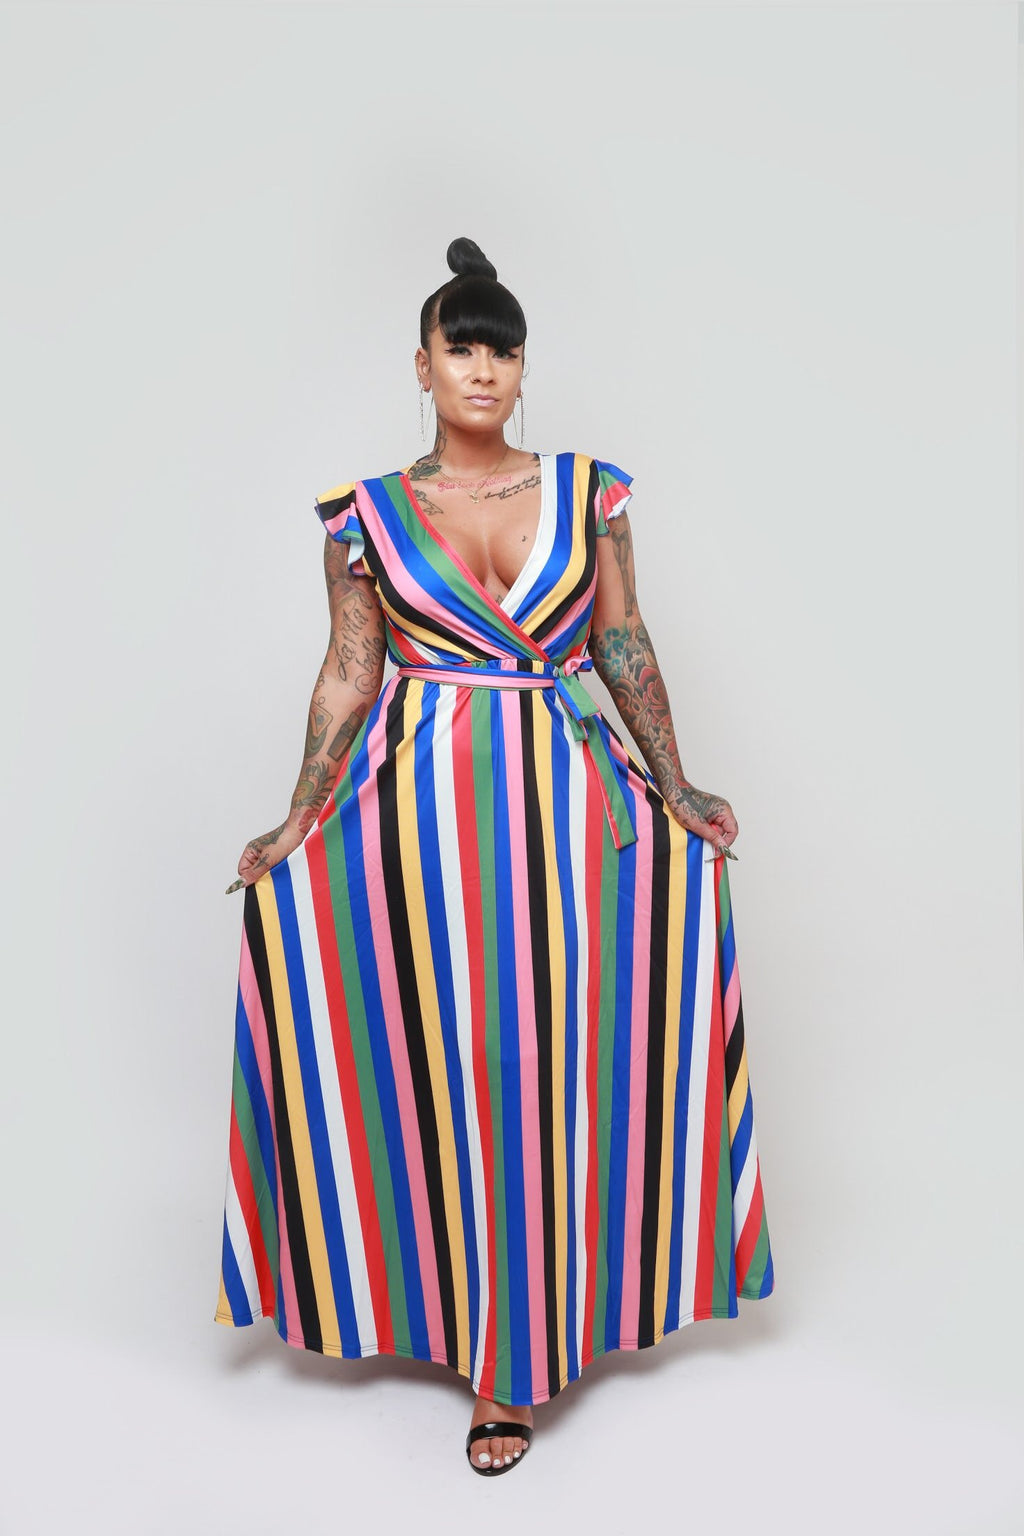 Late Brunch Dress - Slay Brand llc